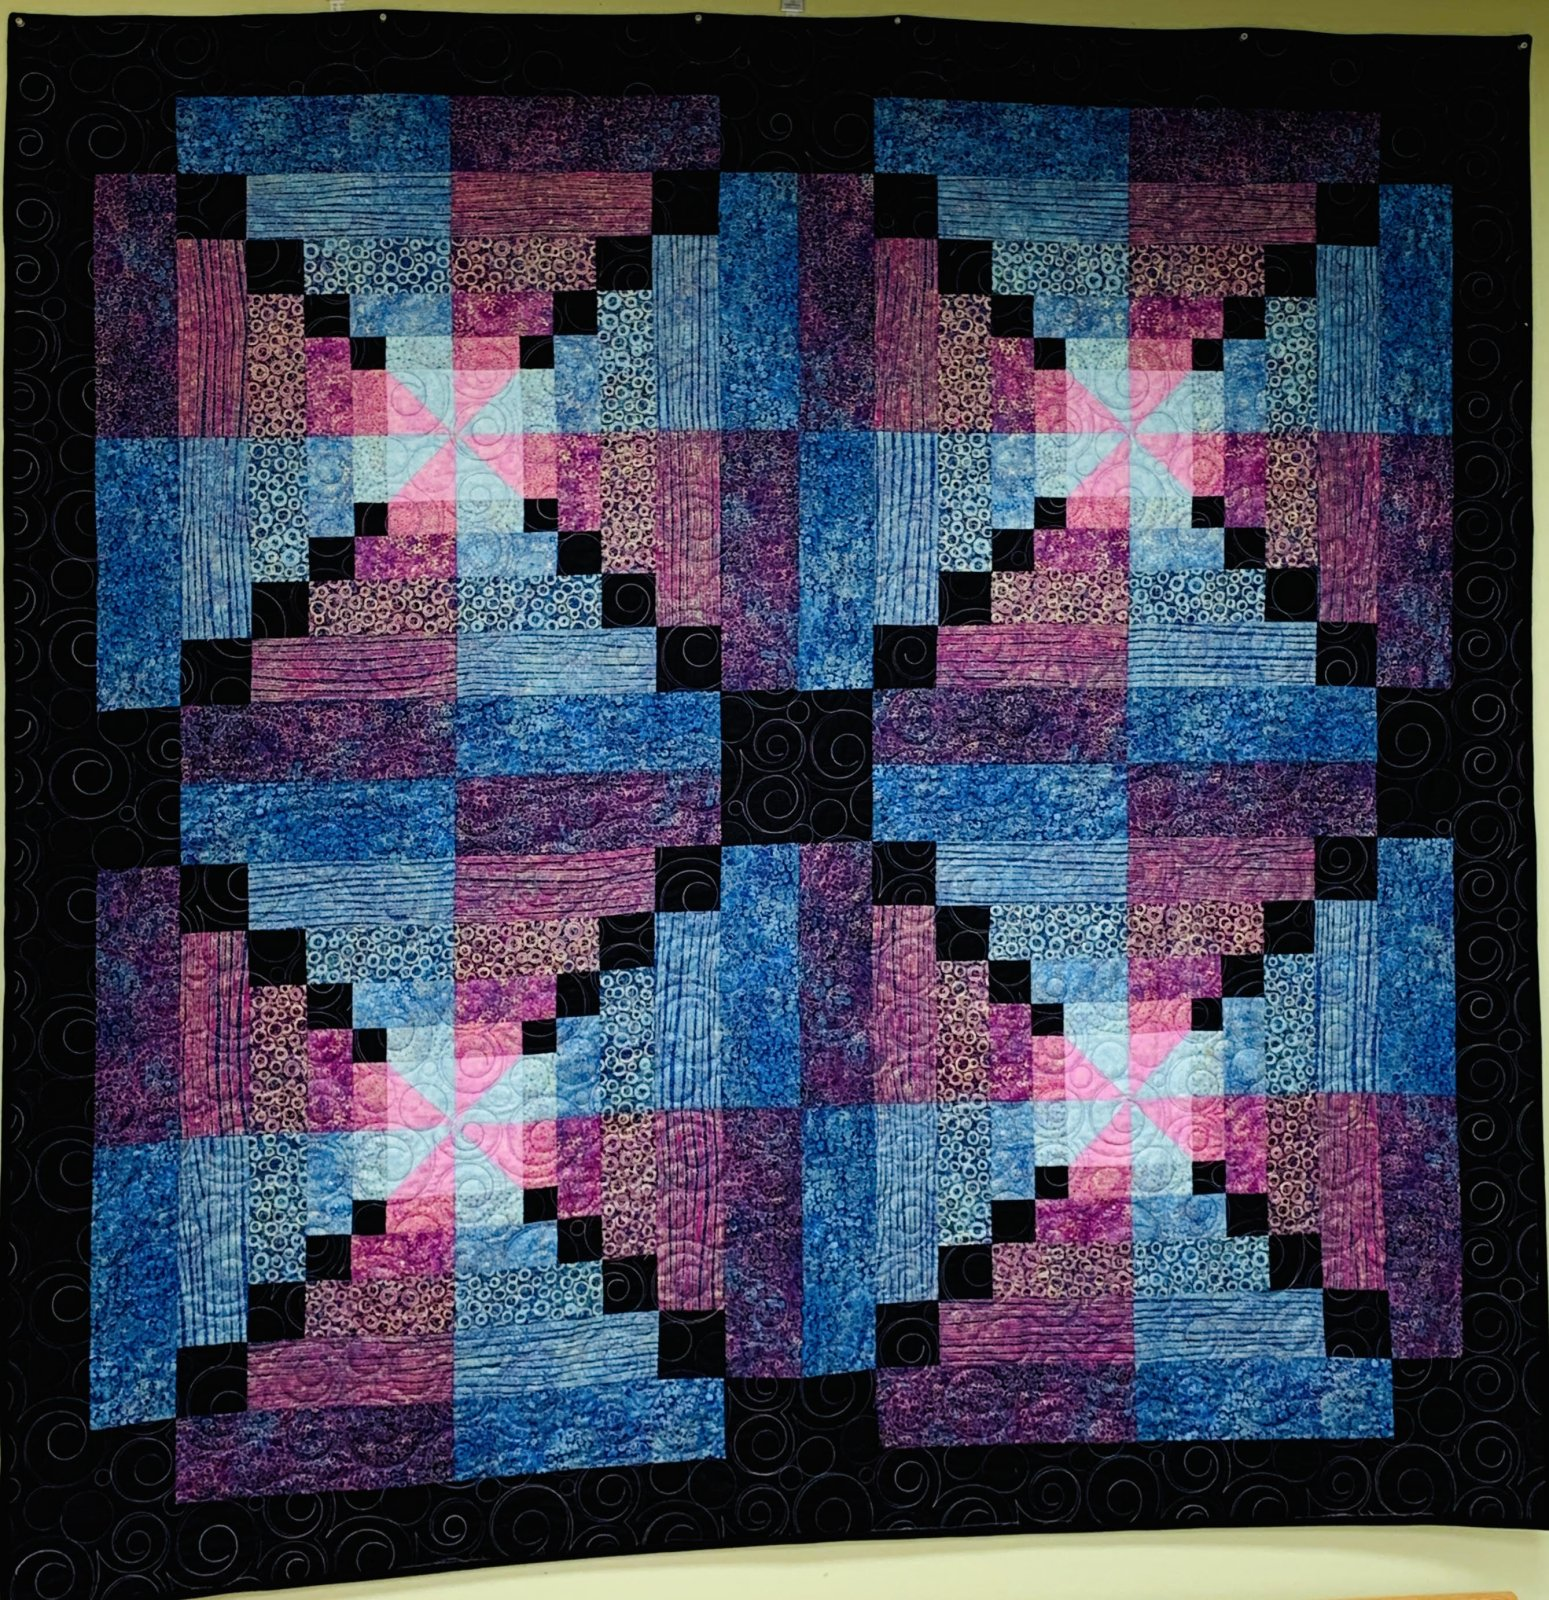 Shimmering Squares by Laurie Huhndorf